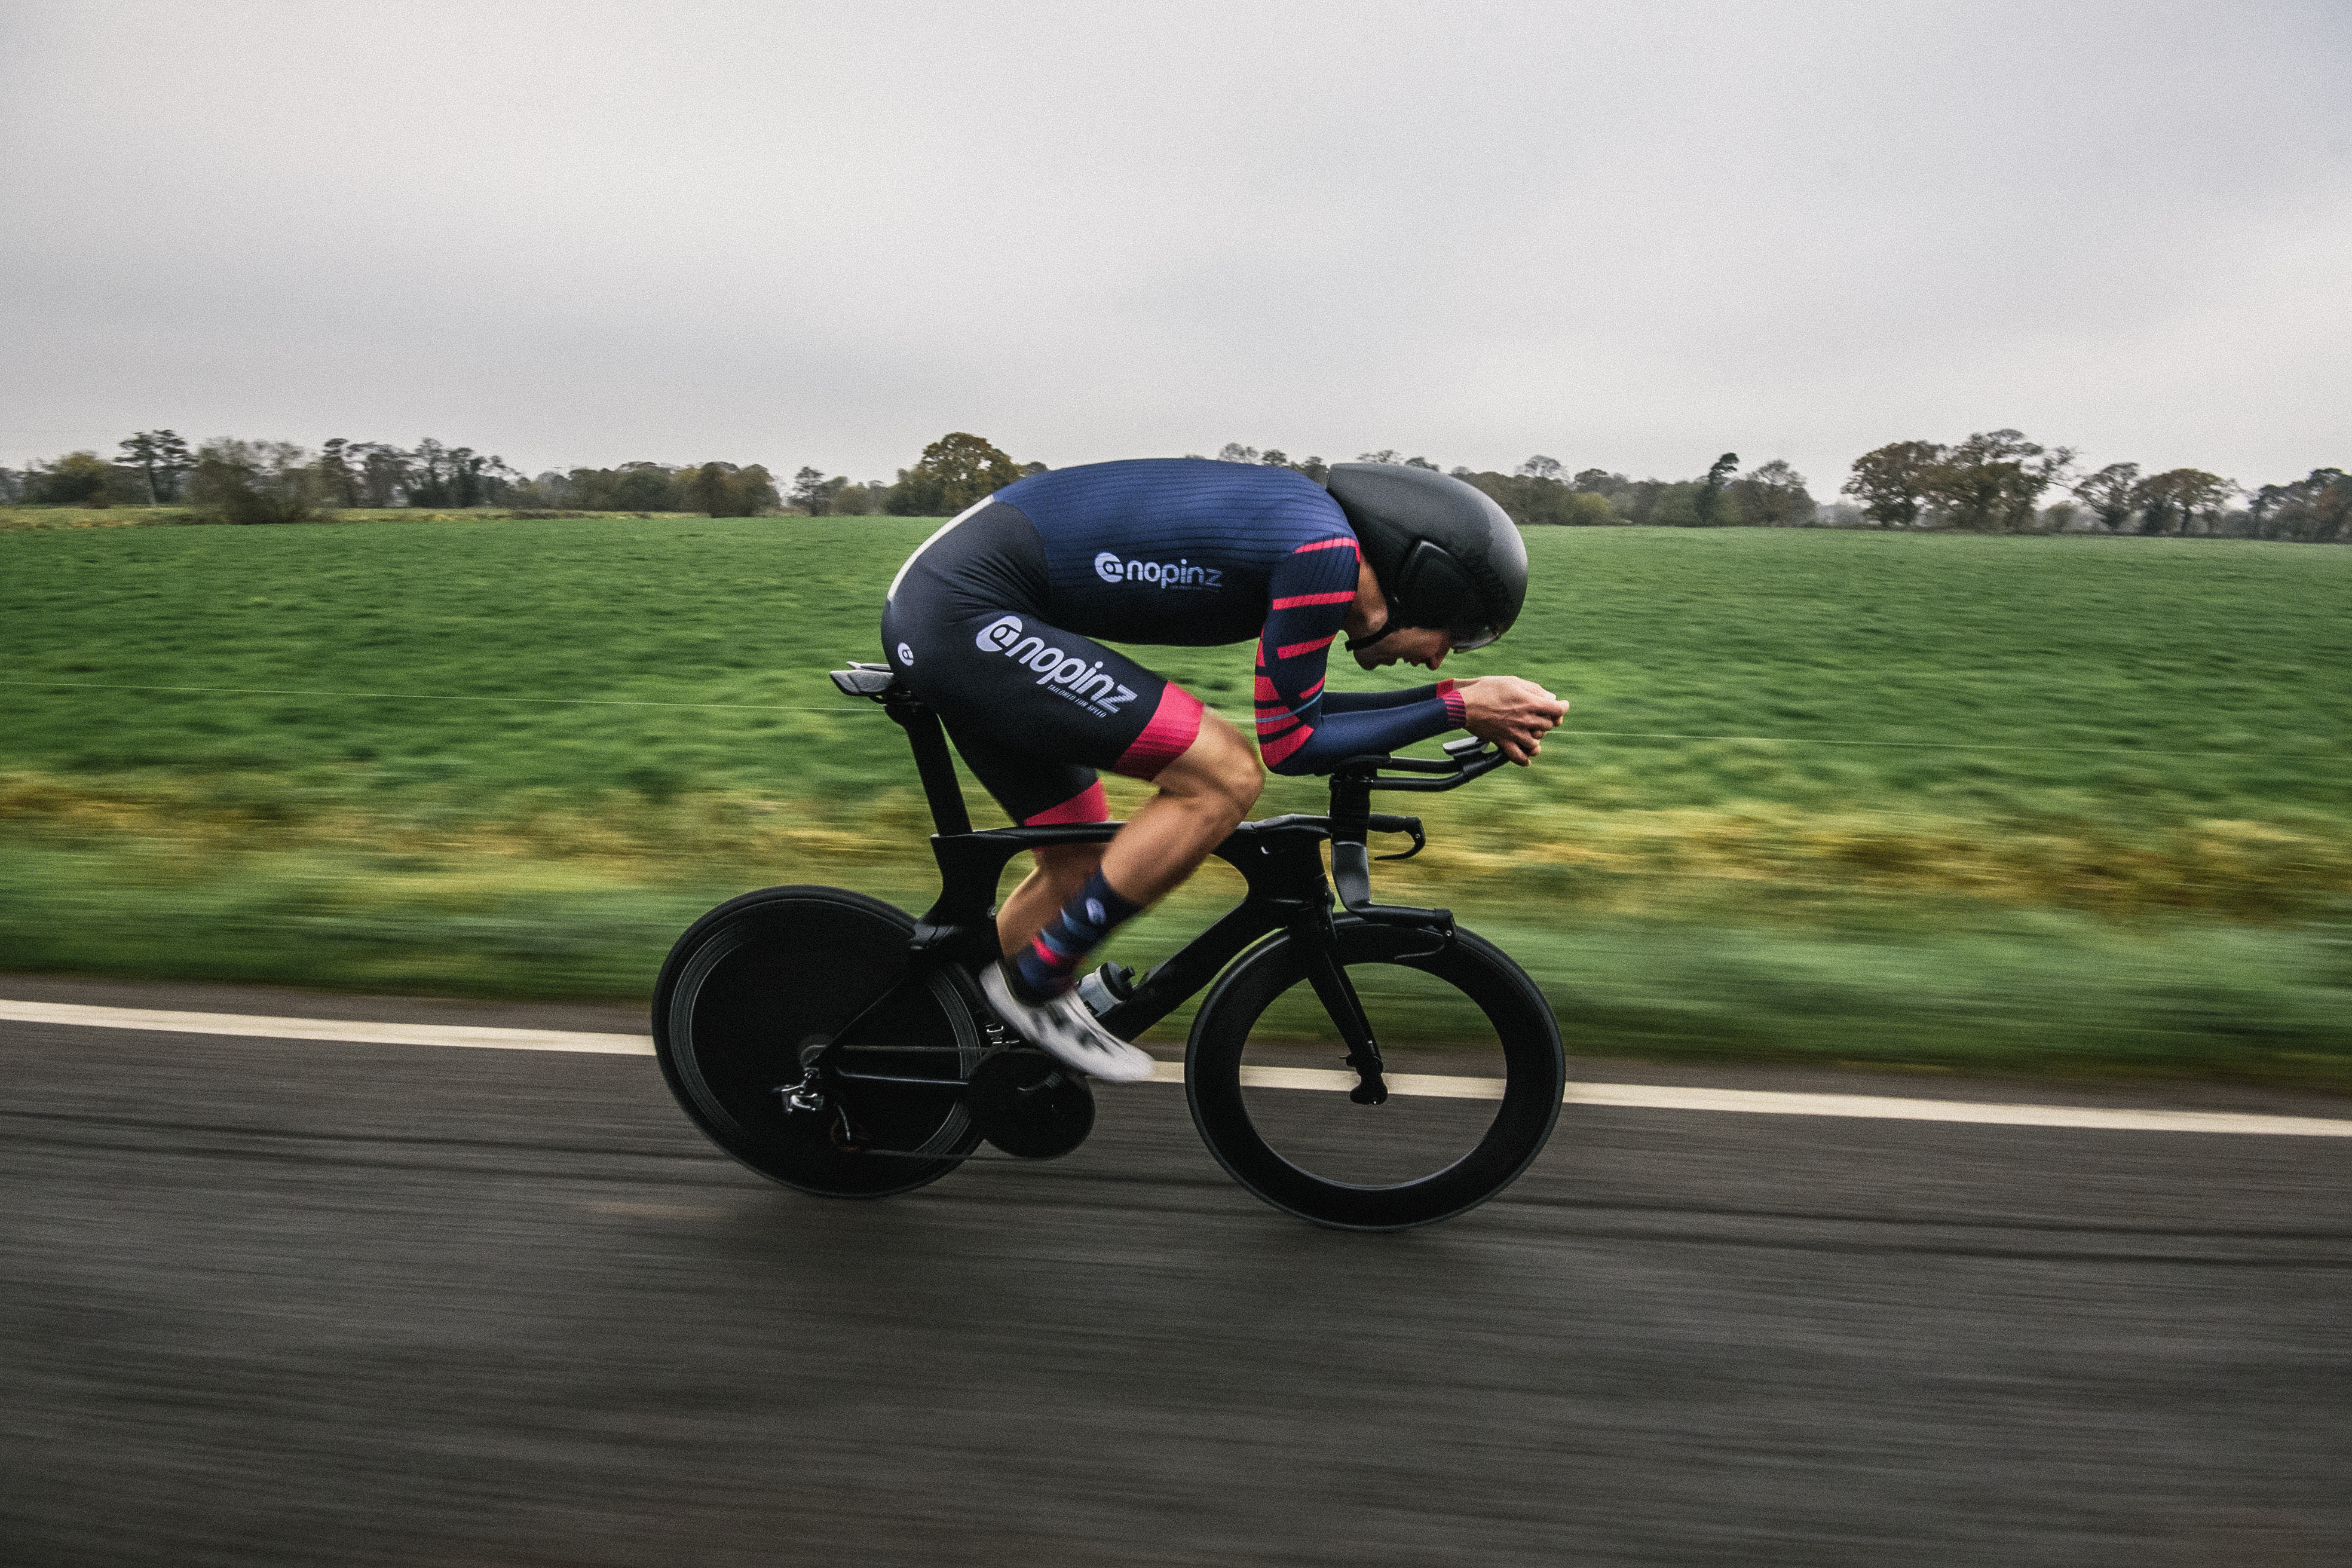 Cyclist rides a time trial bike wearing a Nopinz skinsuit